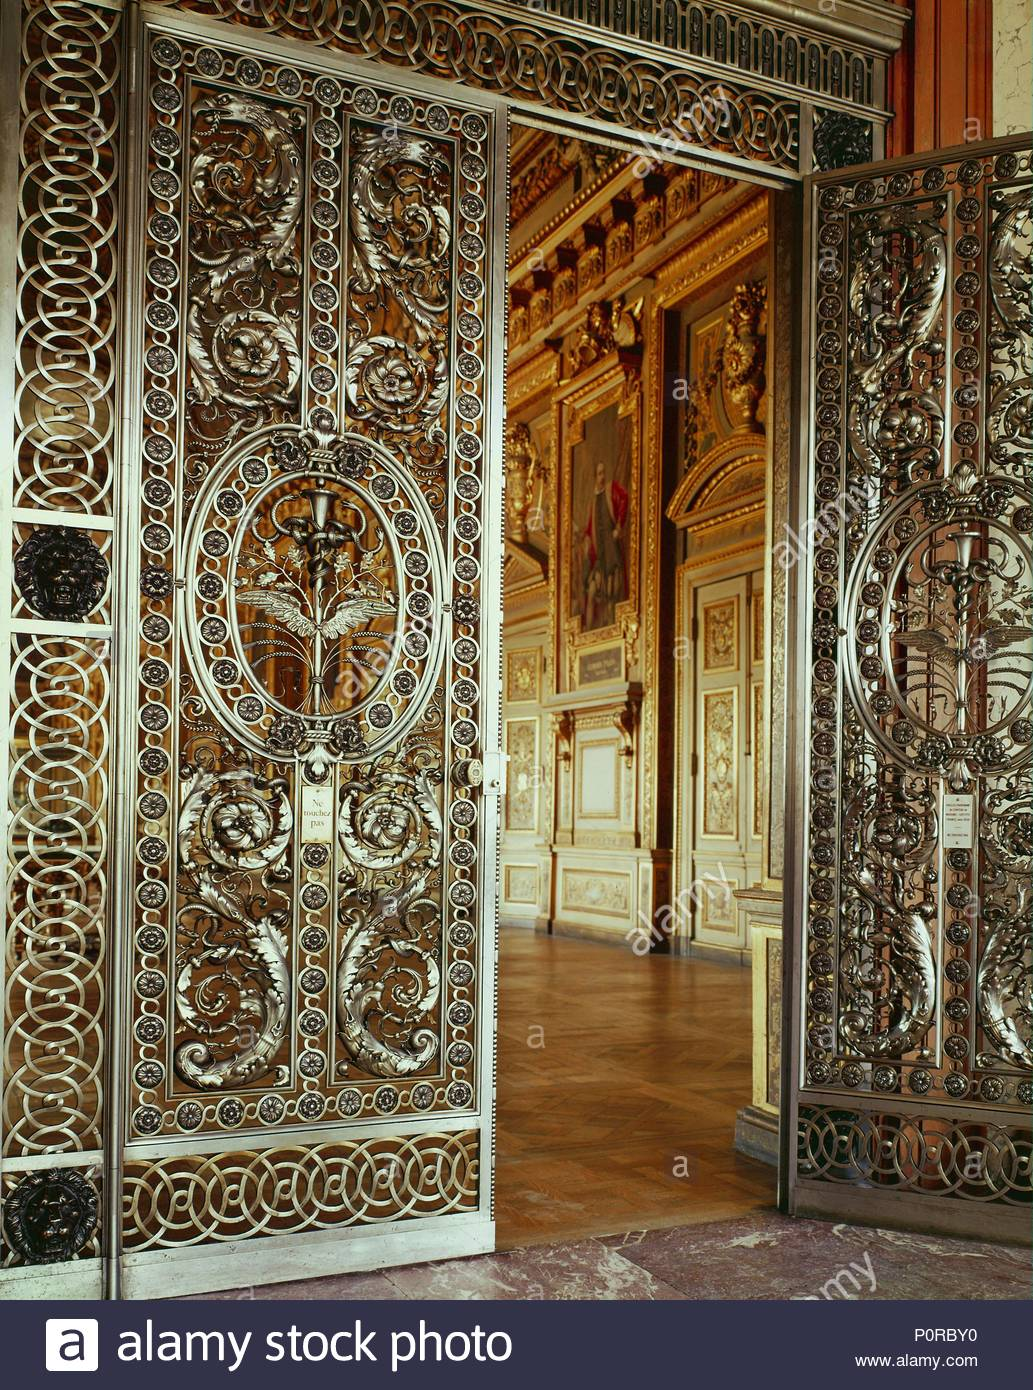 Maisons Et Objets Doors Of The Galerie D Apollon 1650 Wrought Iron And Silver From